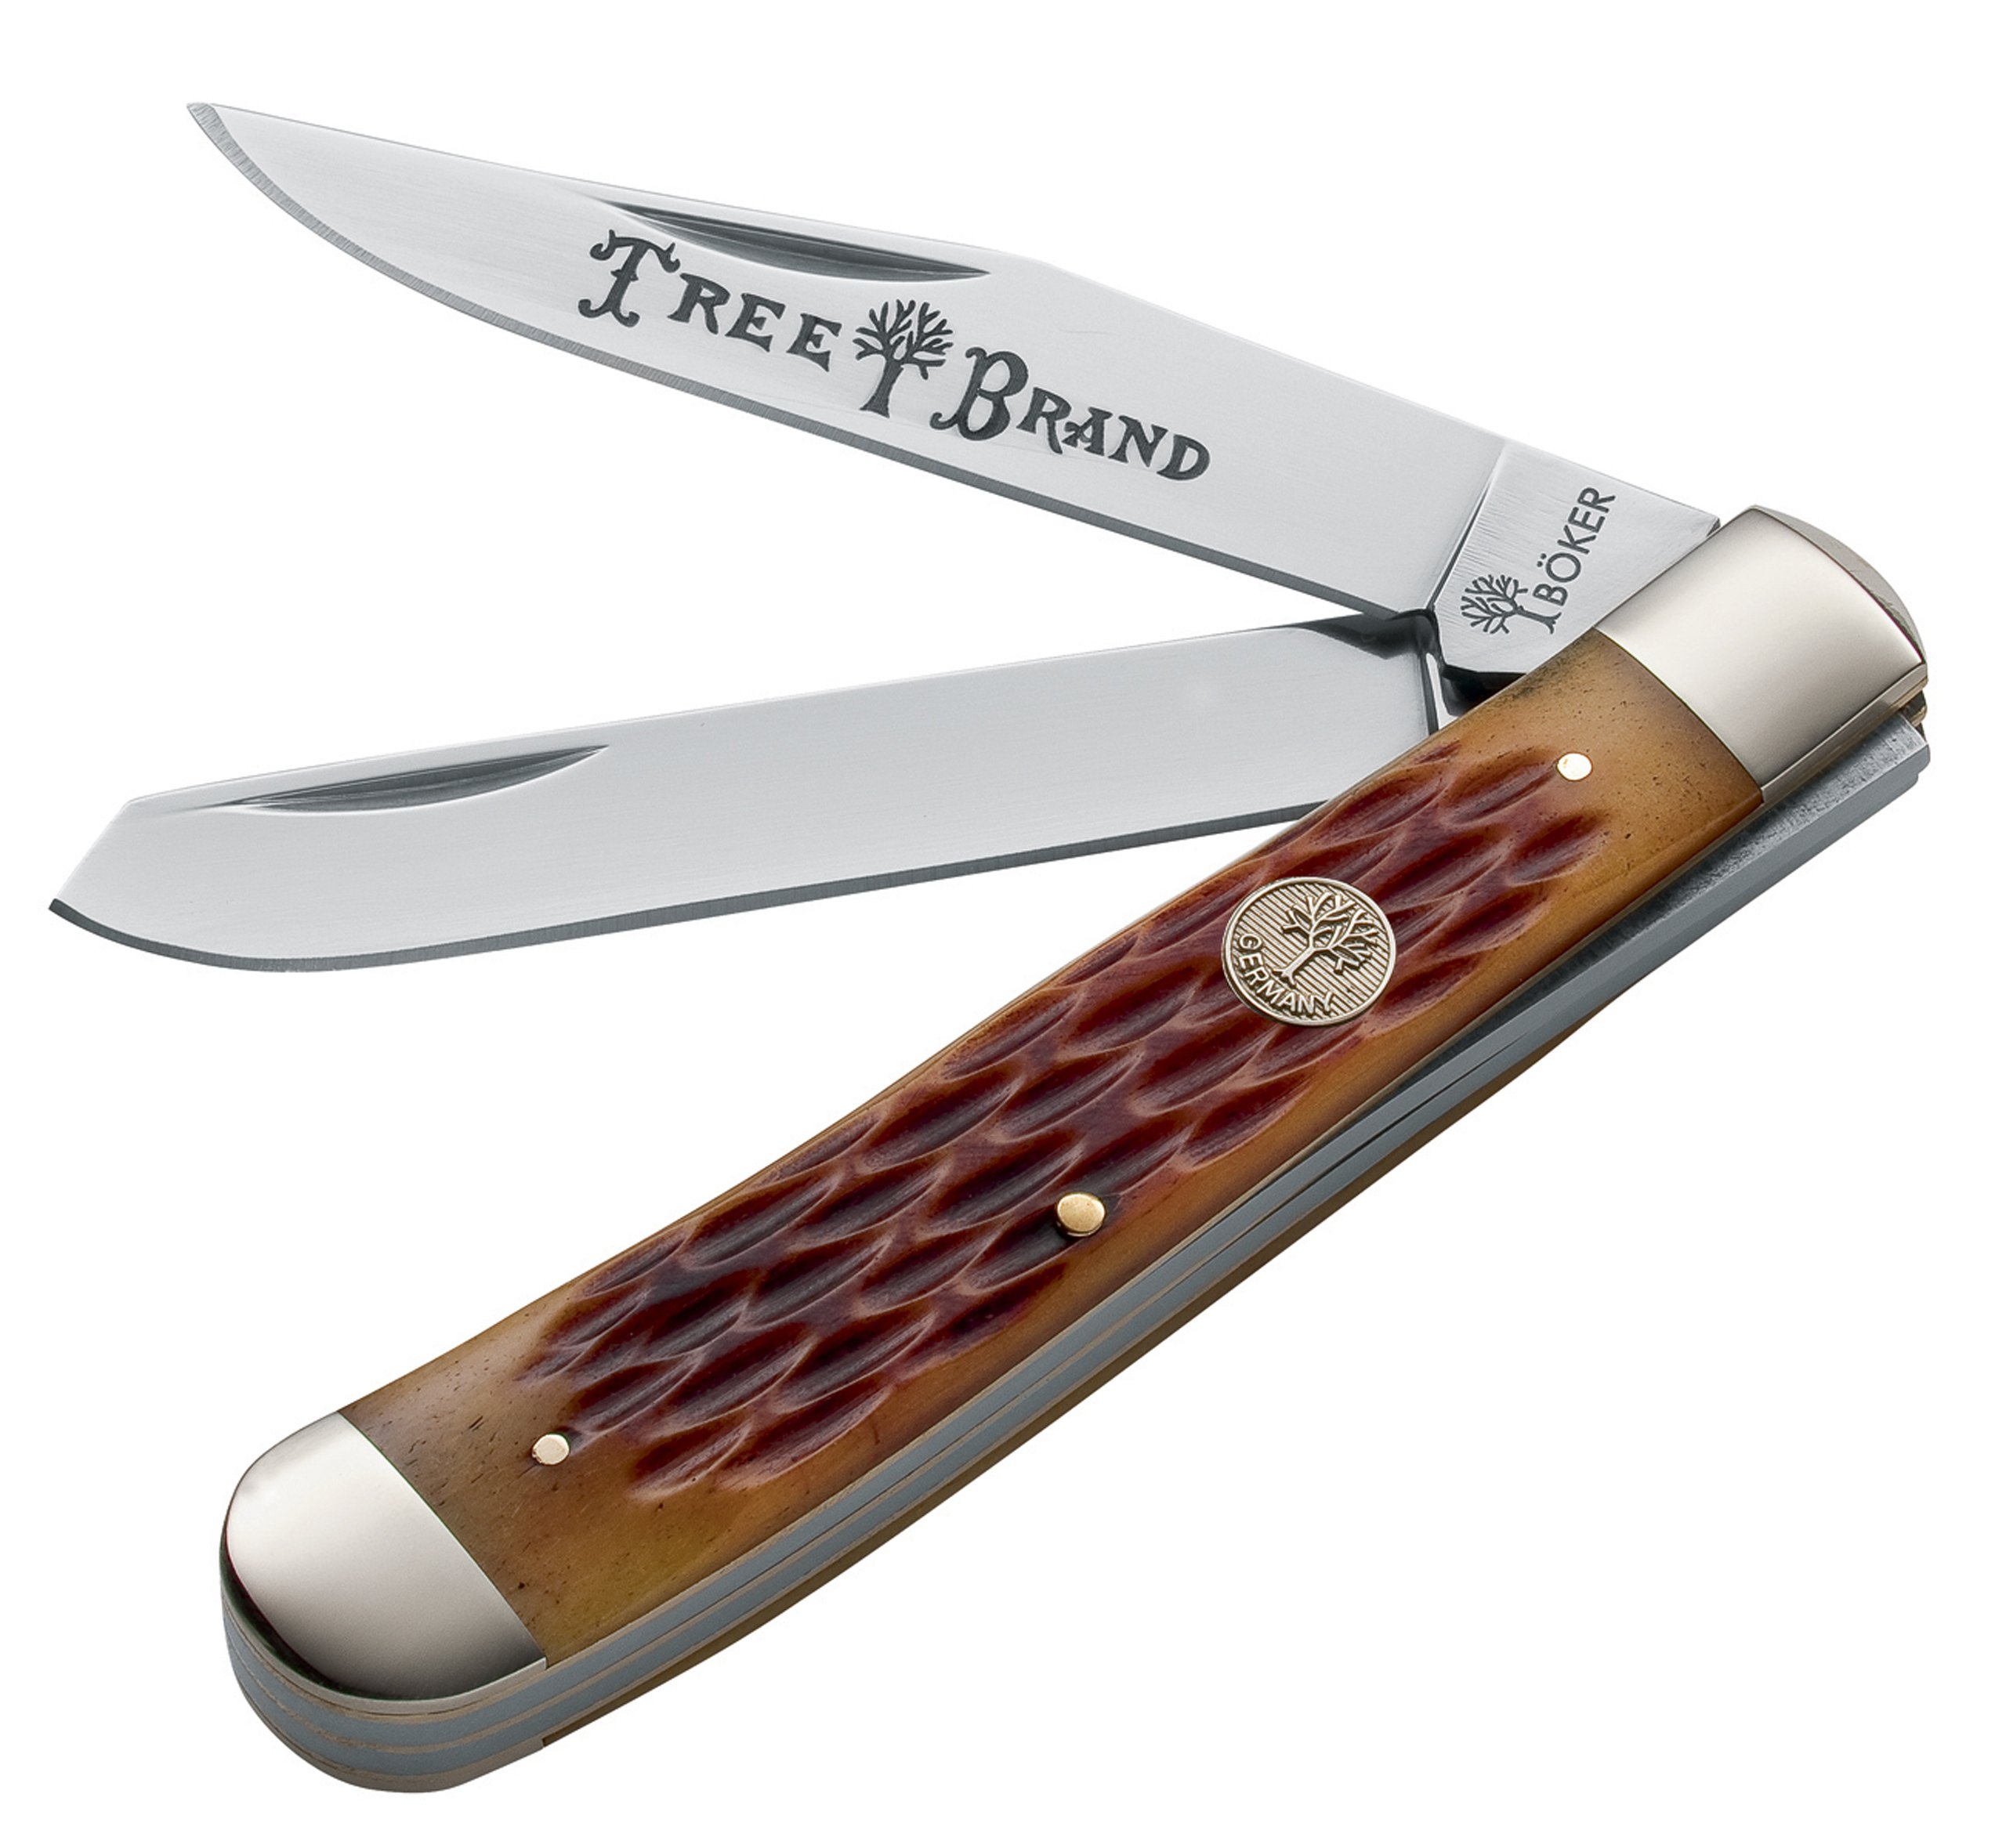 Boker 110732 Ts Trapper Pocket Knife with 3 In. Straight Edge Blade, Brown